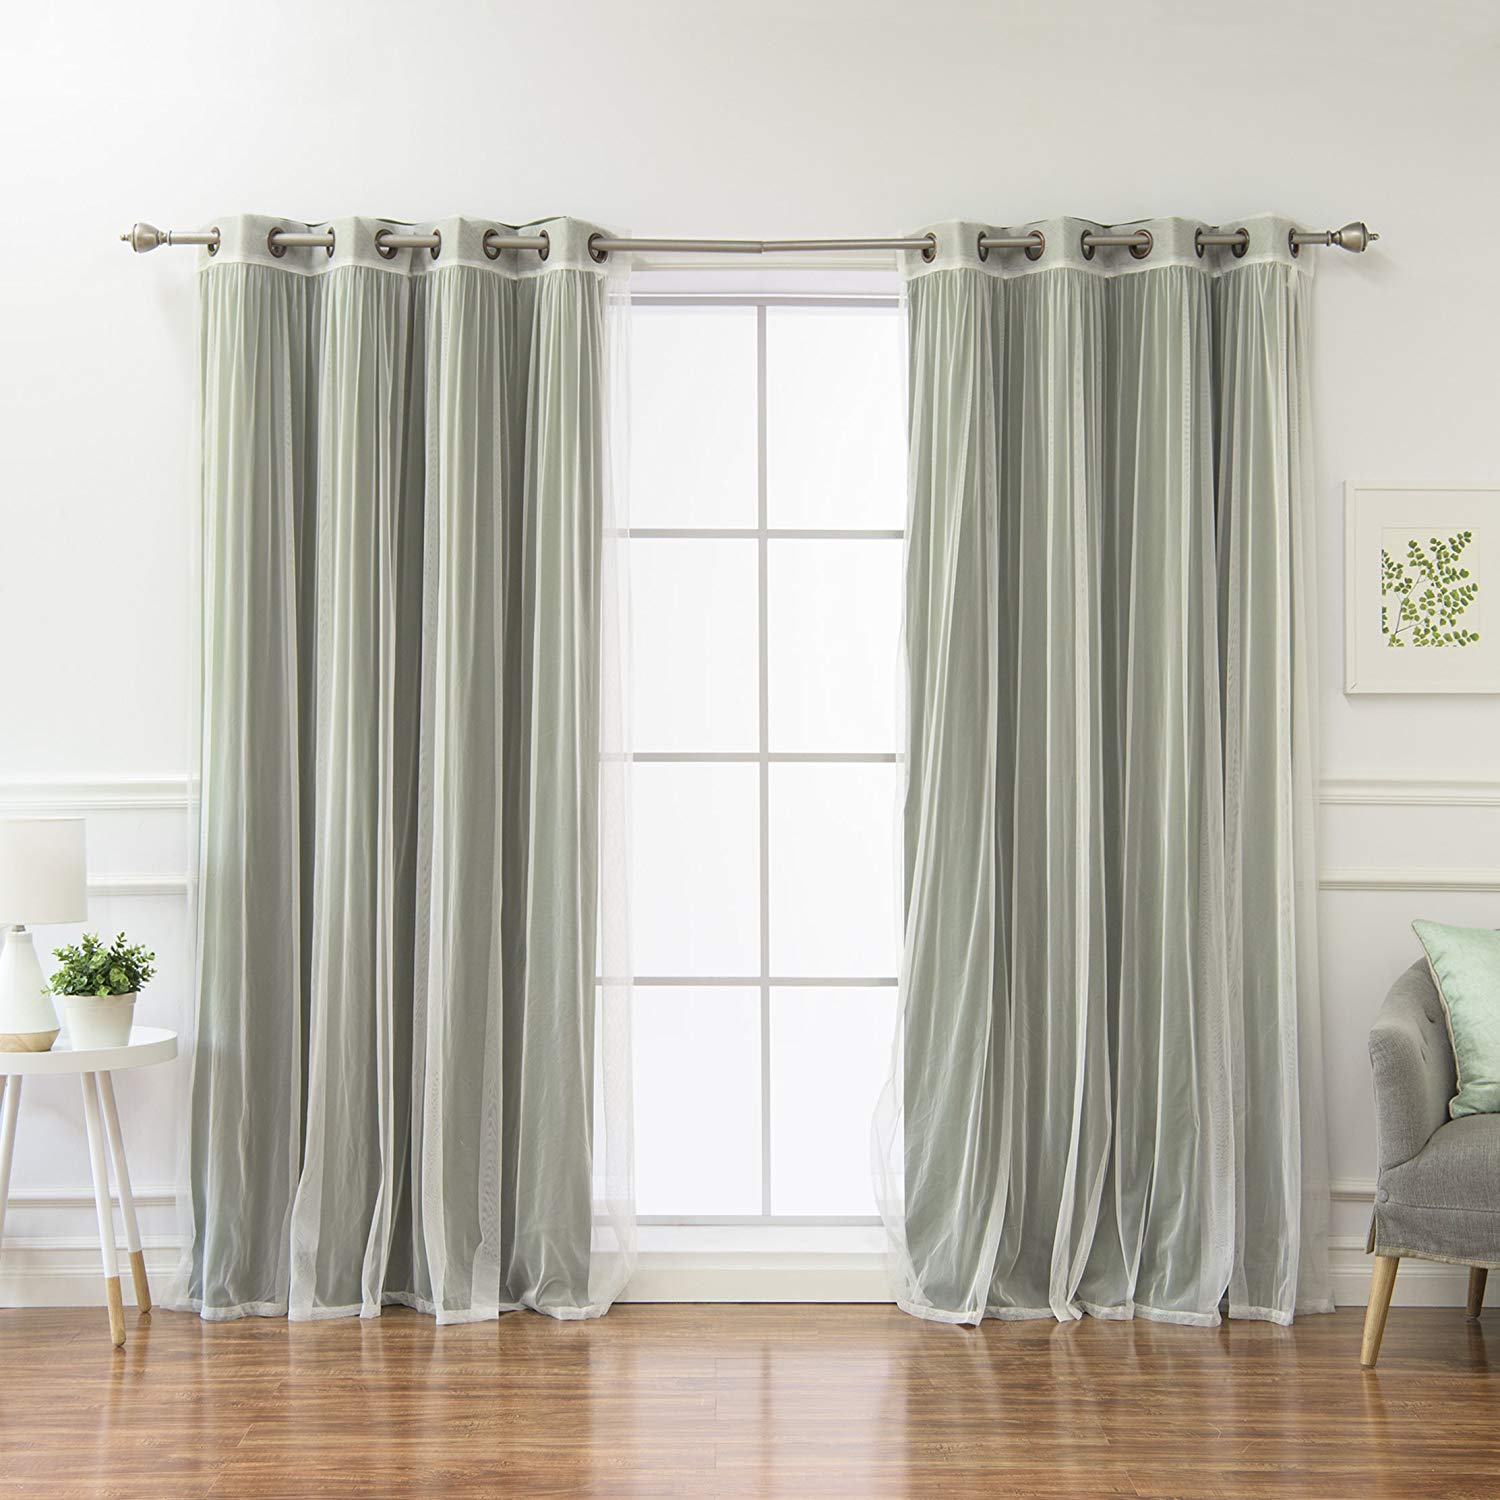 Best Blackout Curtains for Pastels: Best Home Fashion